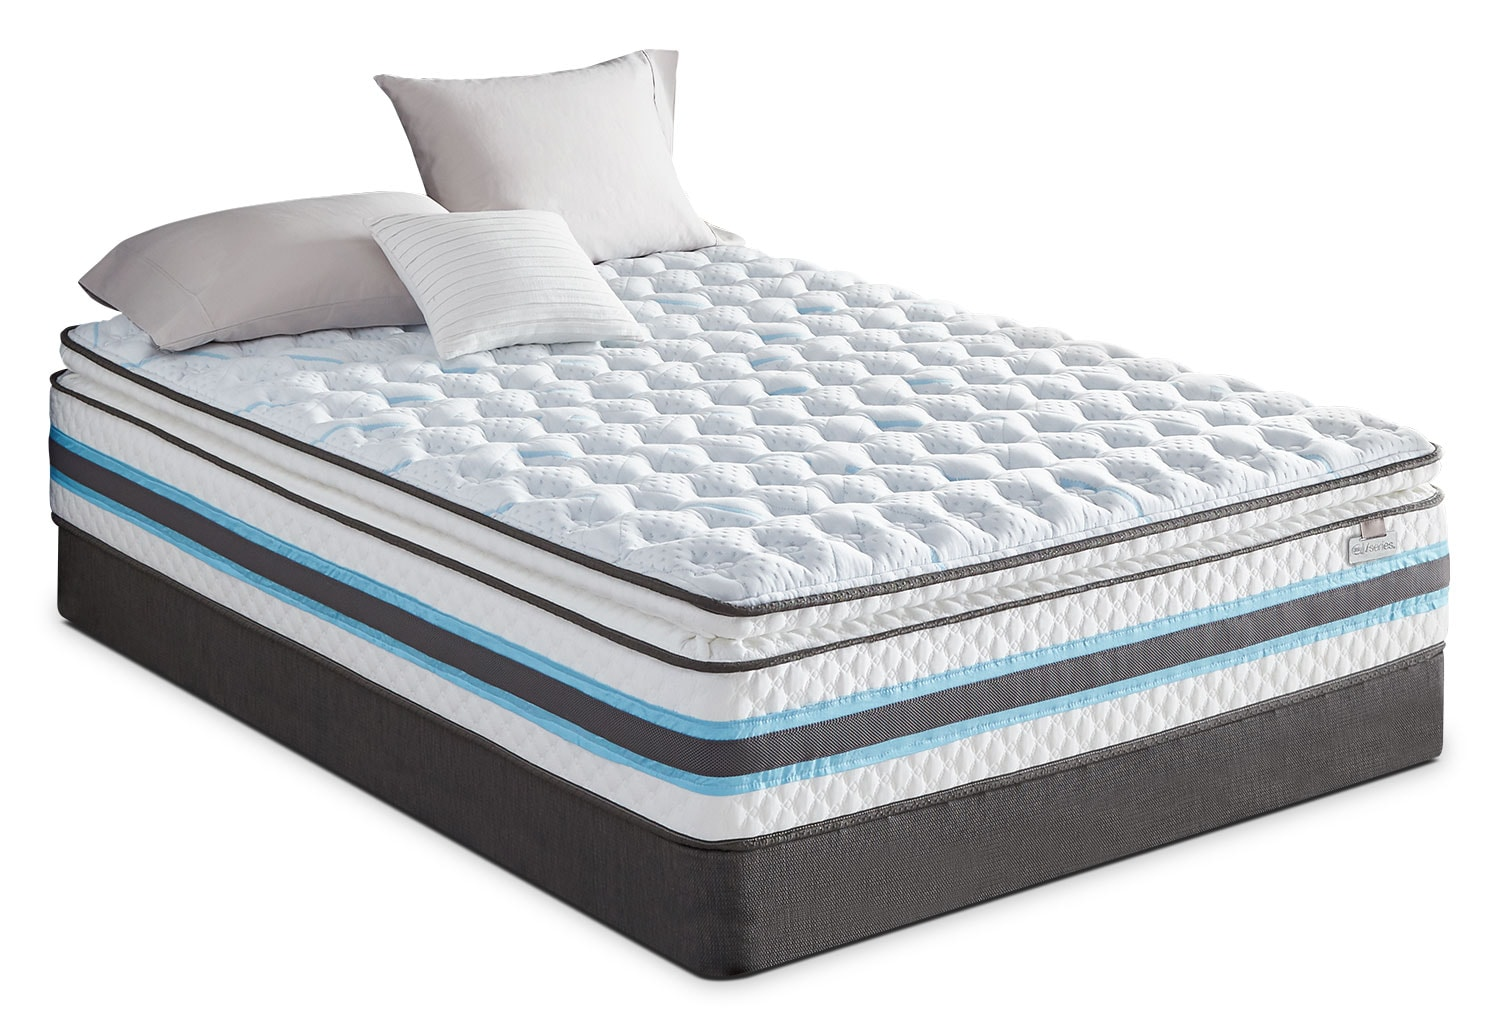 Mattresses and Bedding - Serta iSeries® Breathtaking Pillow-Top Plush King Mattress Set